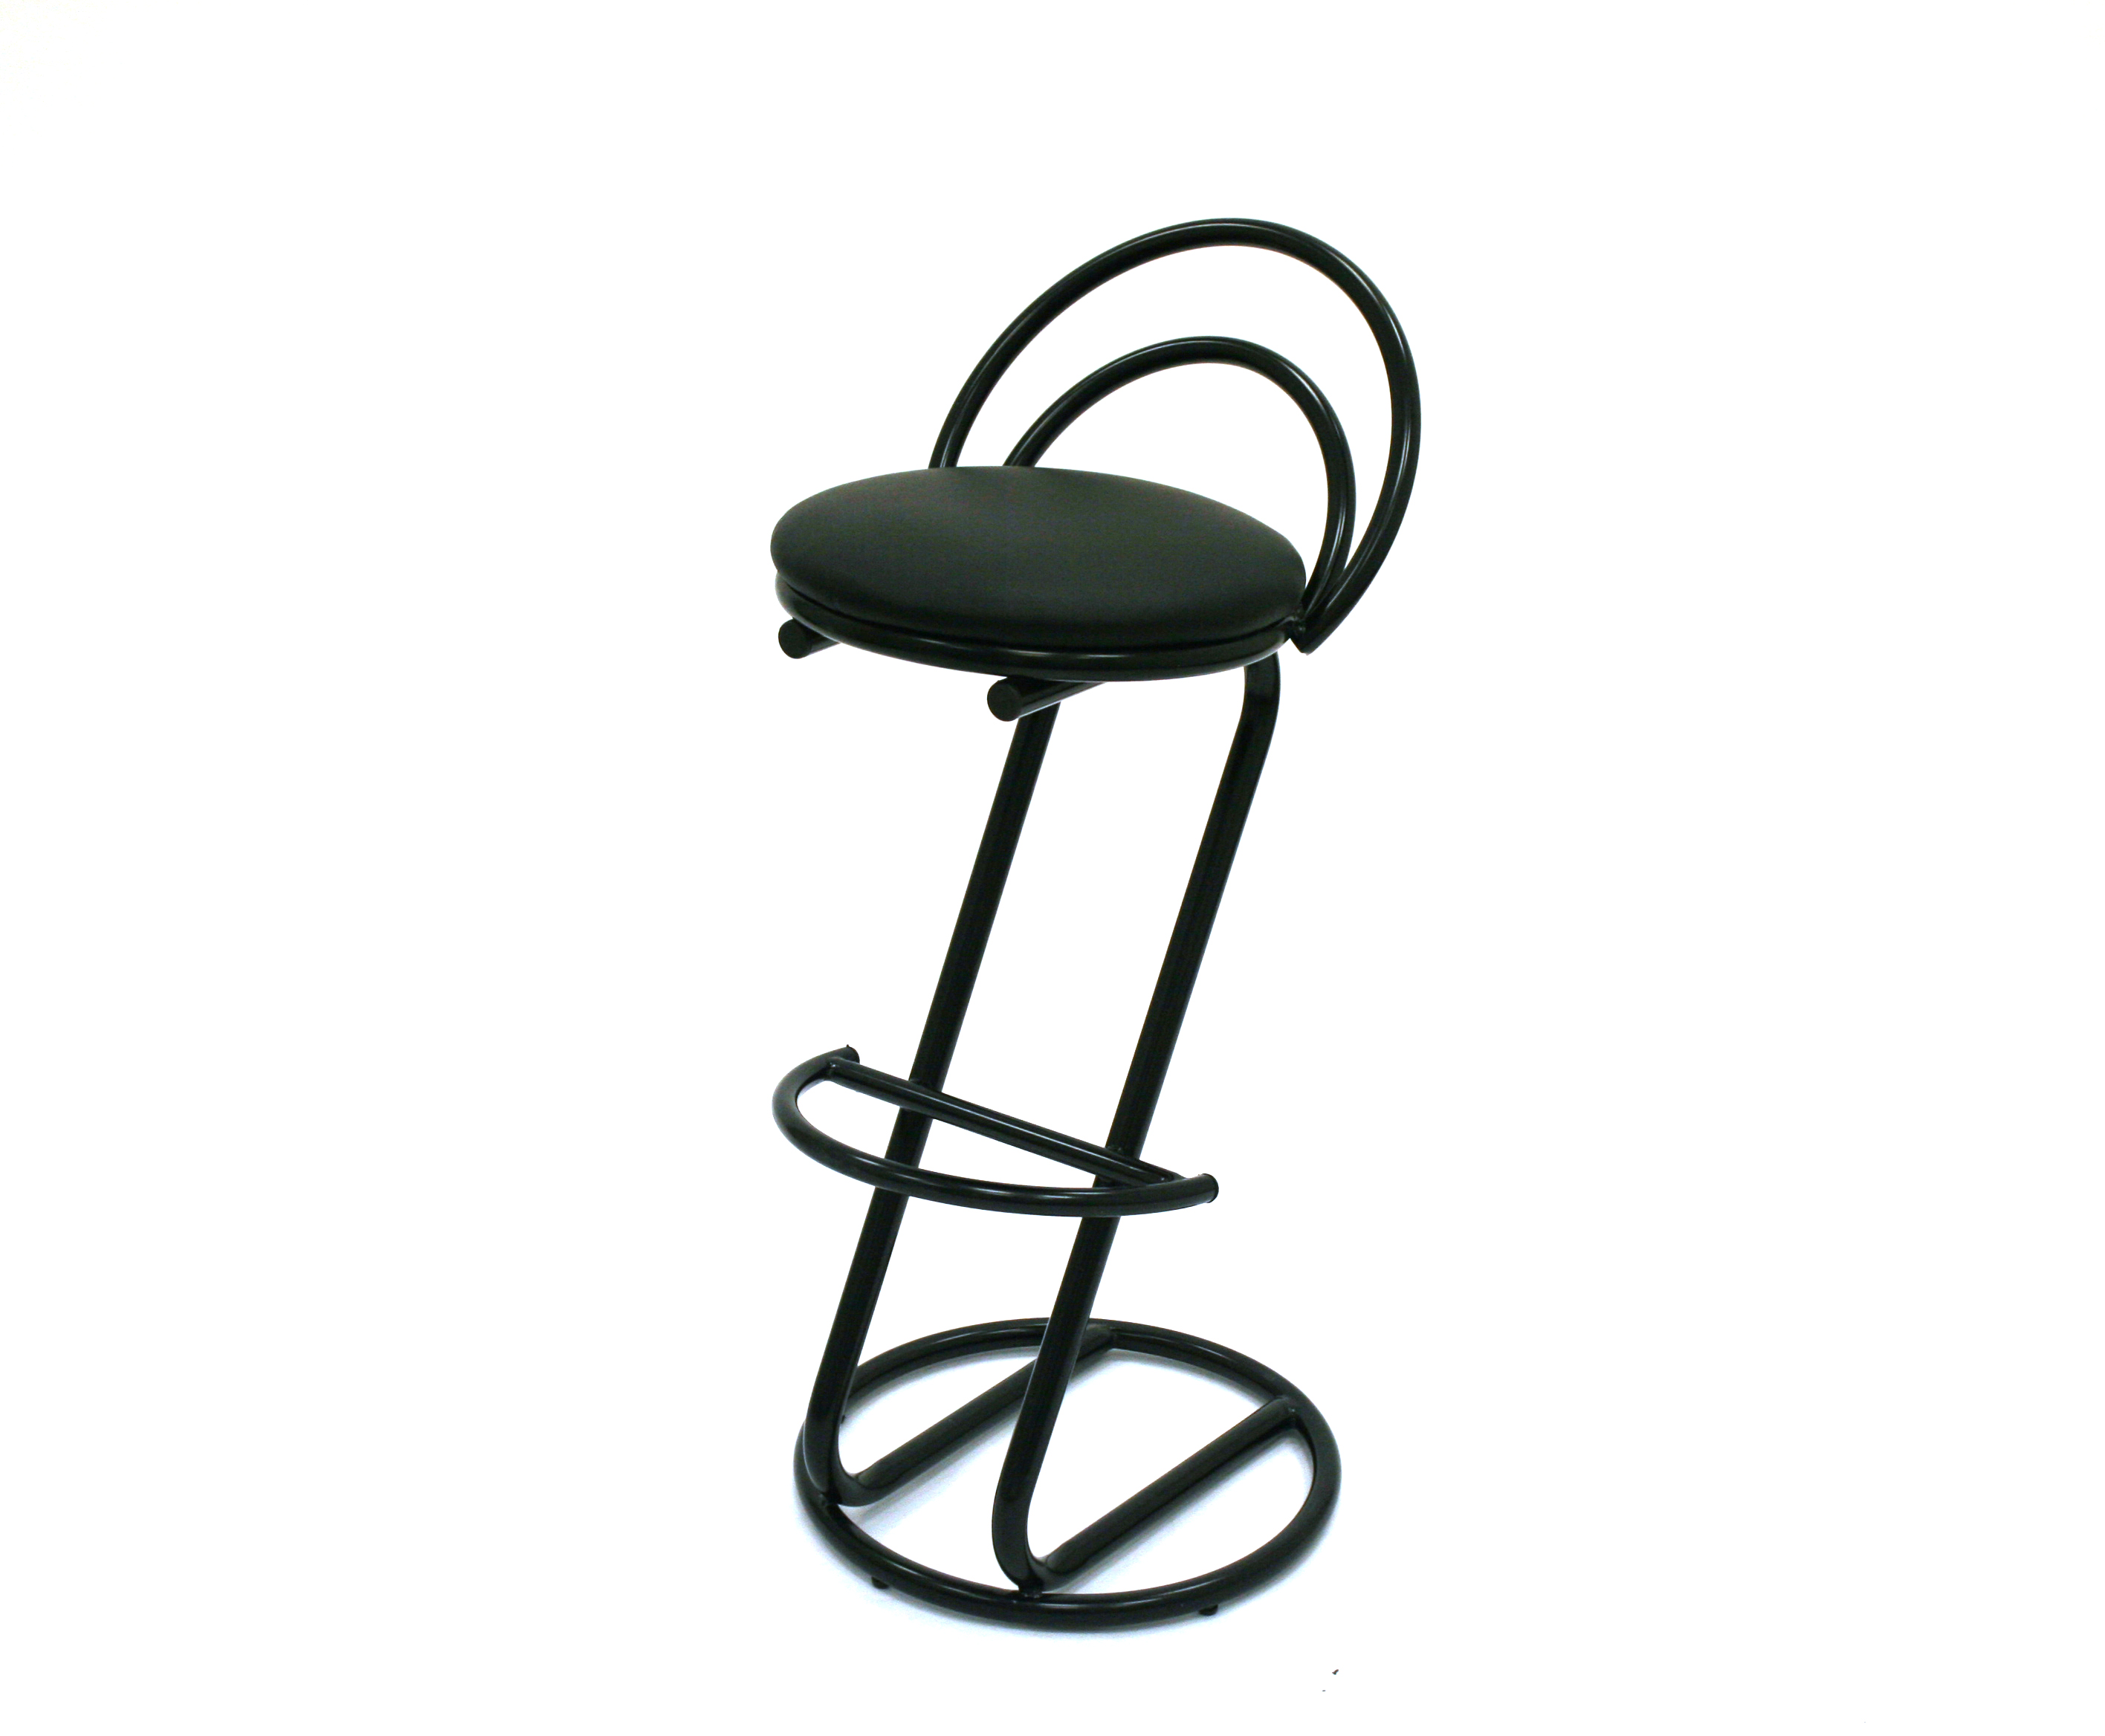 Black Cobra Bar Stools - Cafes, Bistro, Trade Stands - BE Furniture Sales